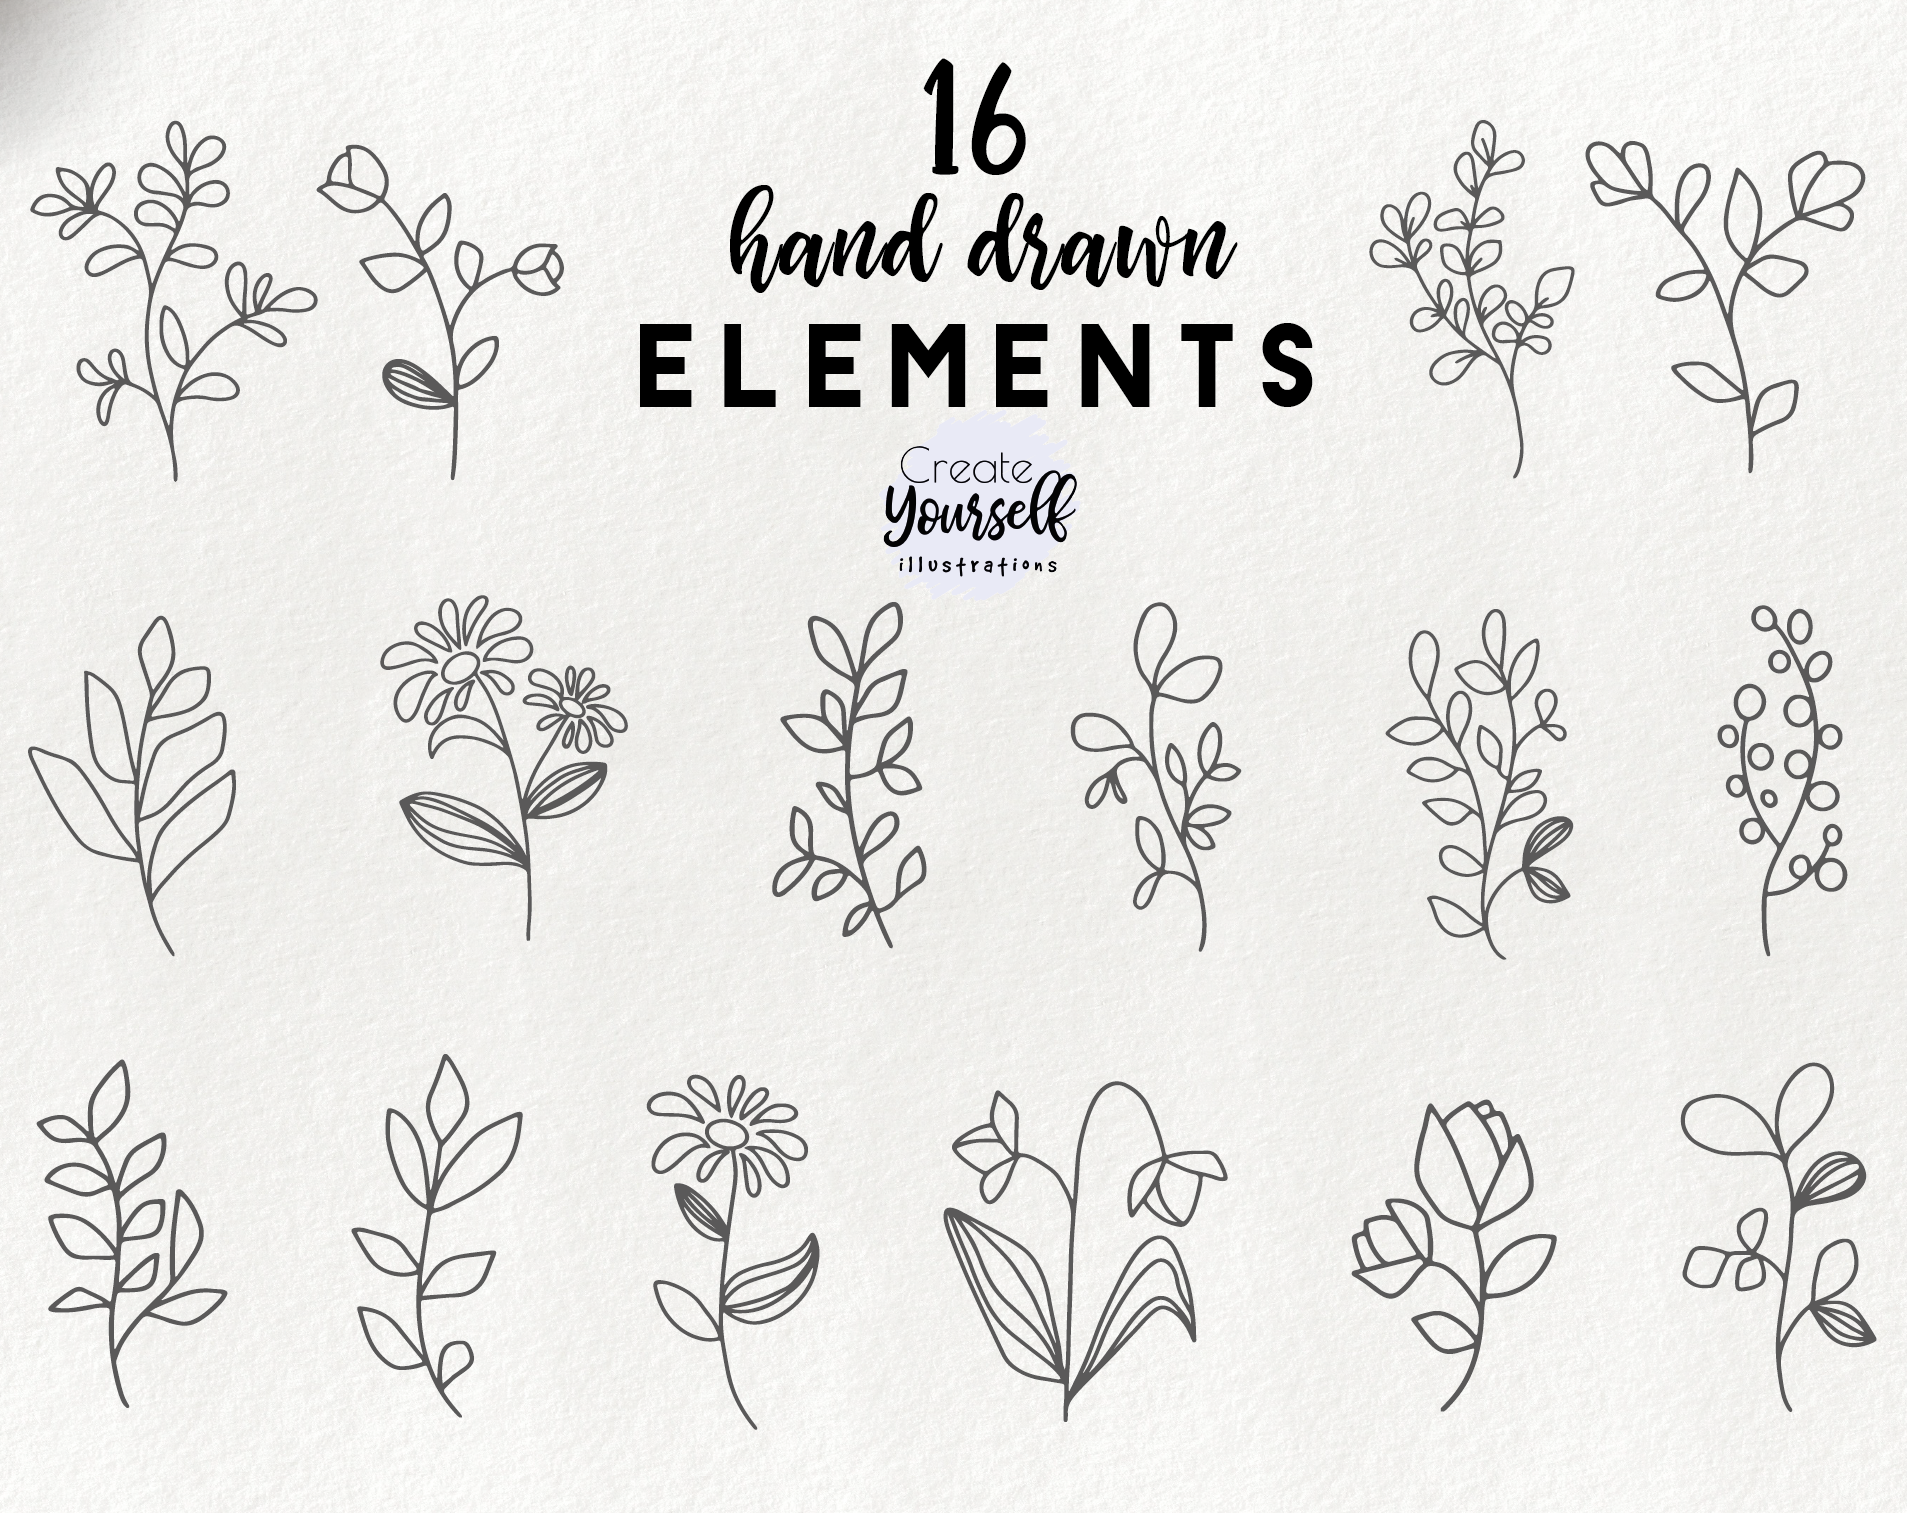 Hand drawn floral elements.